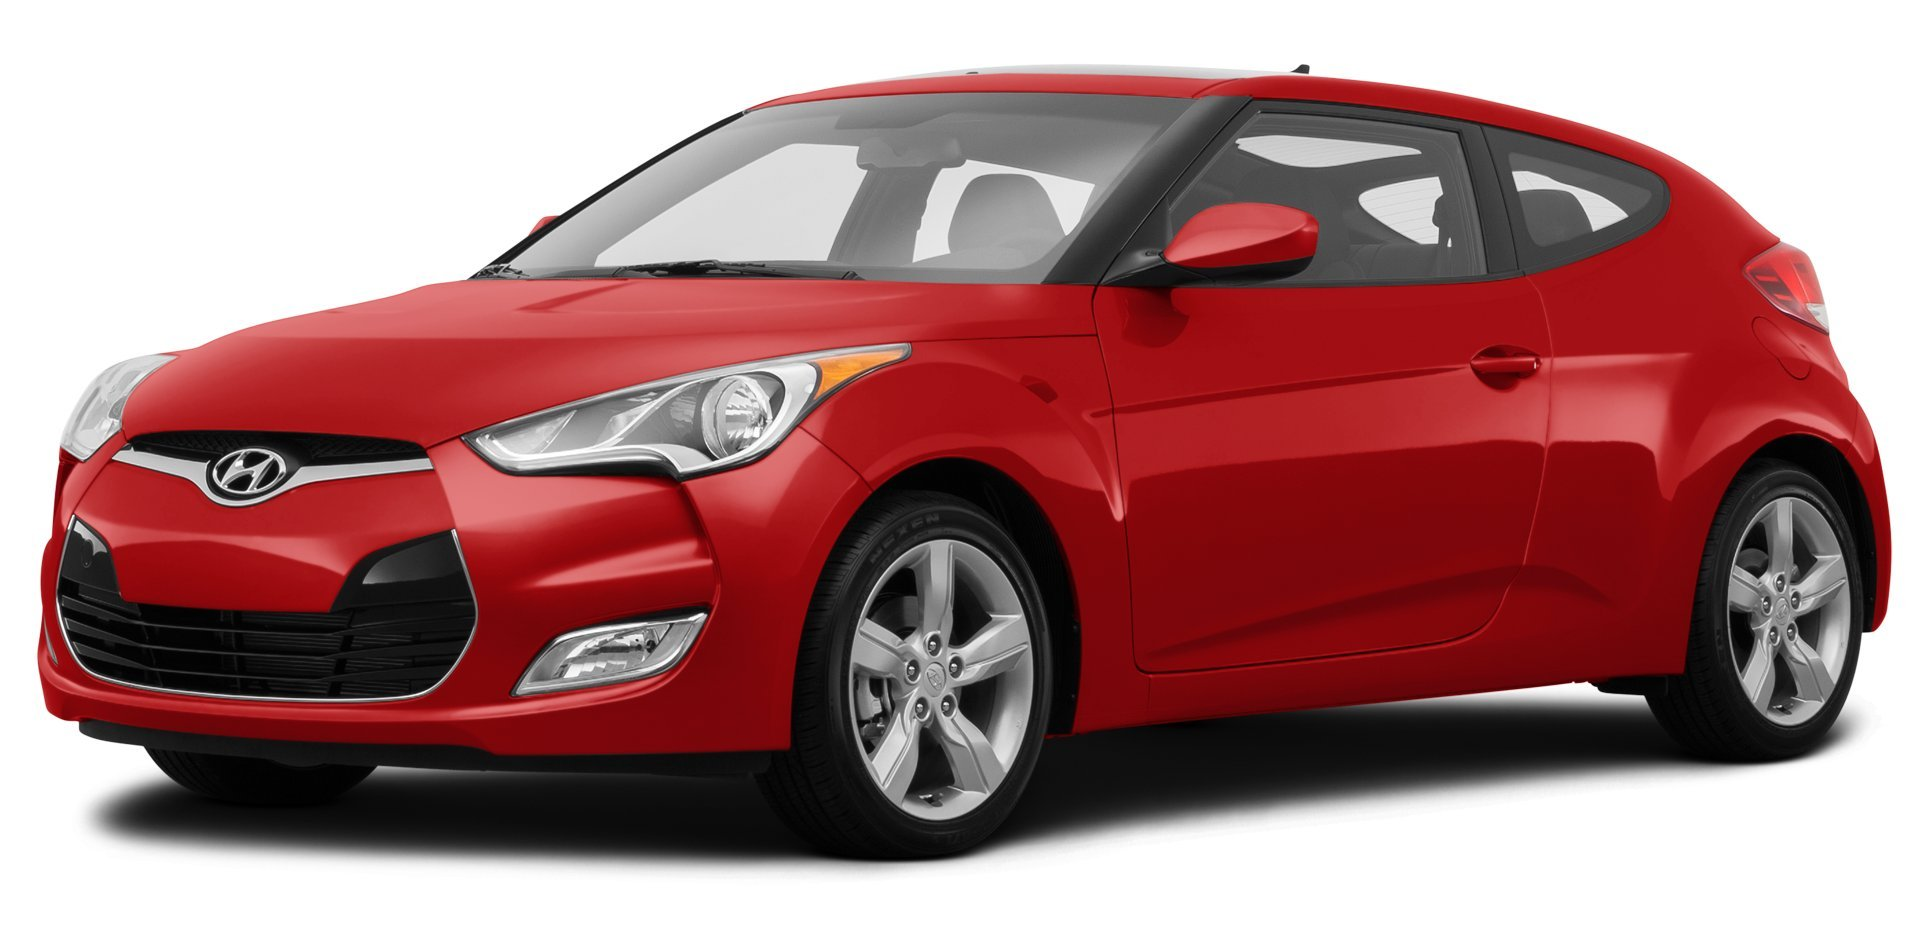 2014 Hyundai Veloster Turbo 3-Door Coupe Automatic Transmission w/Black Interior  sc 1 st  Amazon.com & 4.5 out of 5 stars20 customer reviews